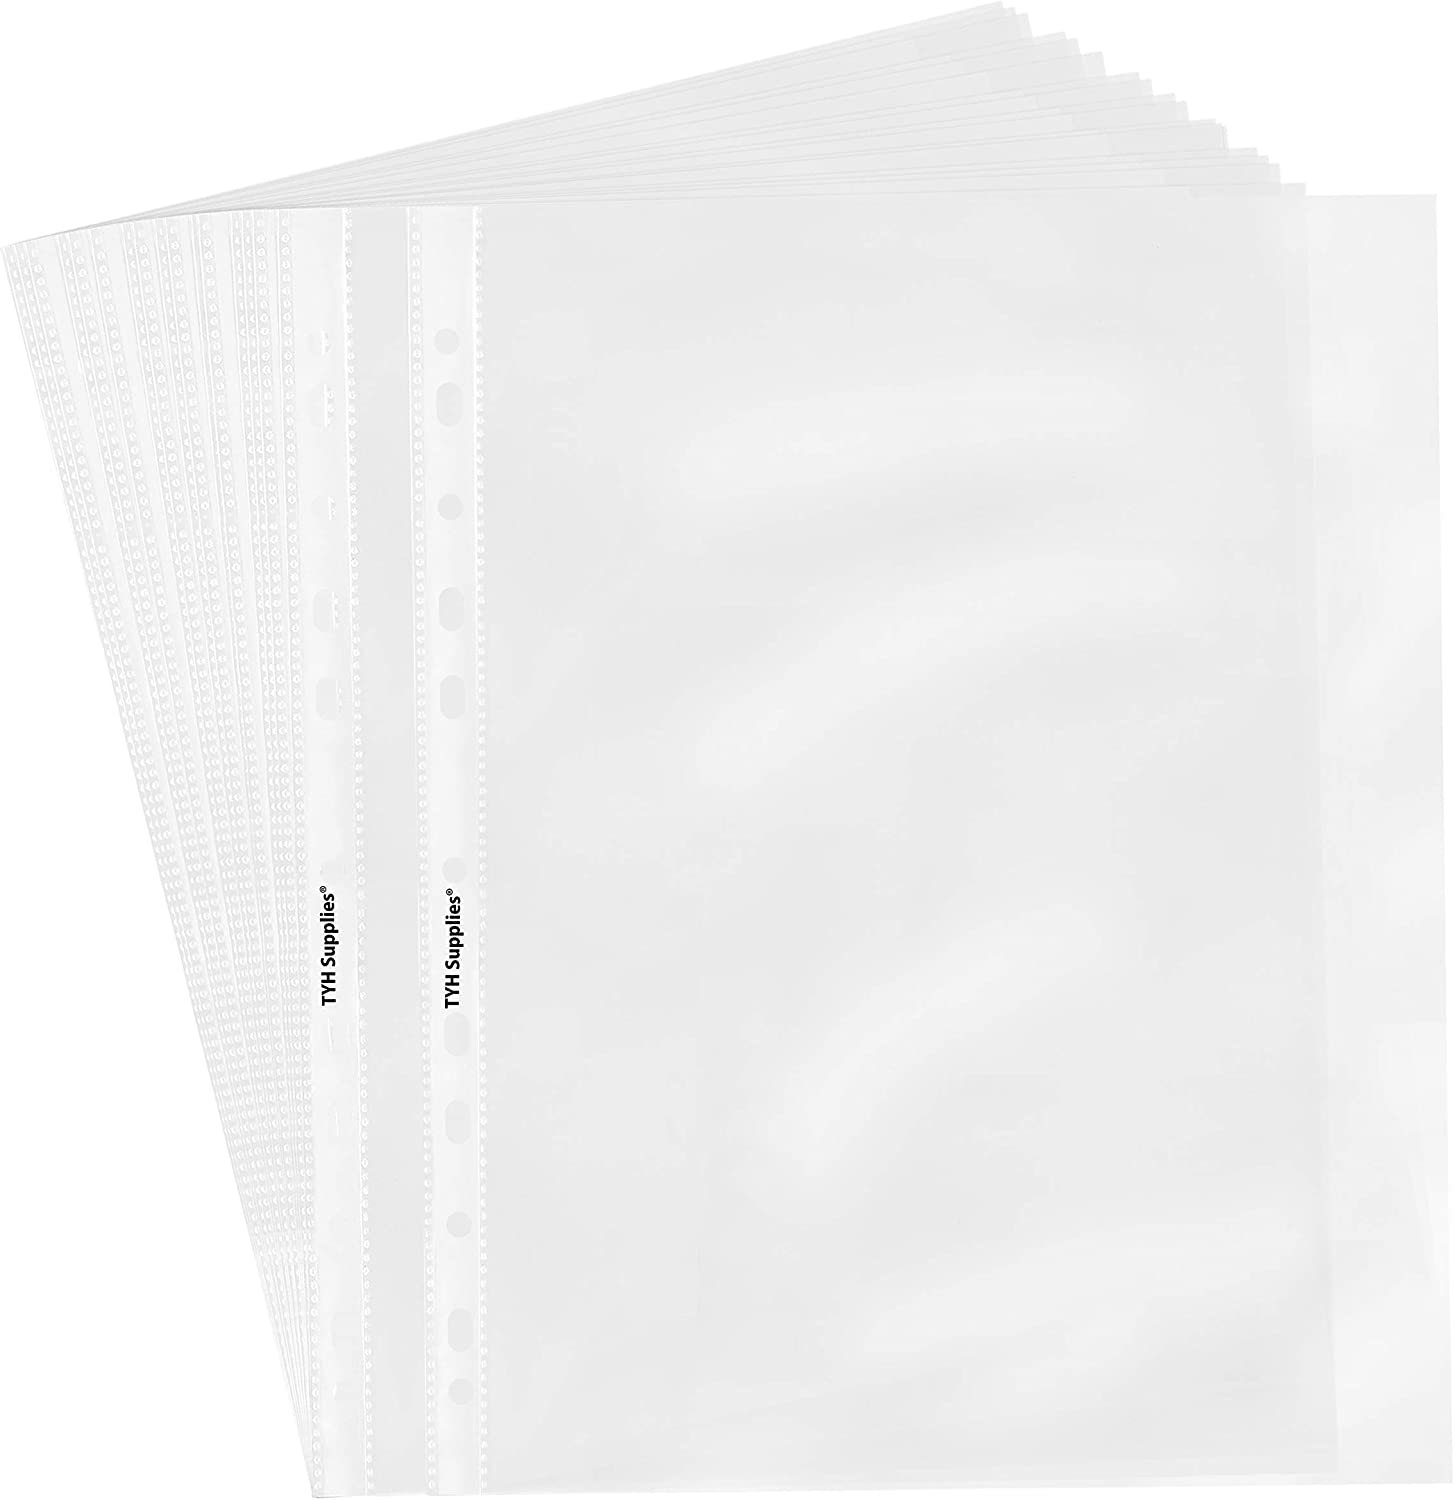 TYH Supplies 100 Pack Heavyweight Clear Sheet Protectors 8.5 x 11 Inch Top Loading Non Vinyl Acid Free 11 Hole